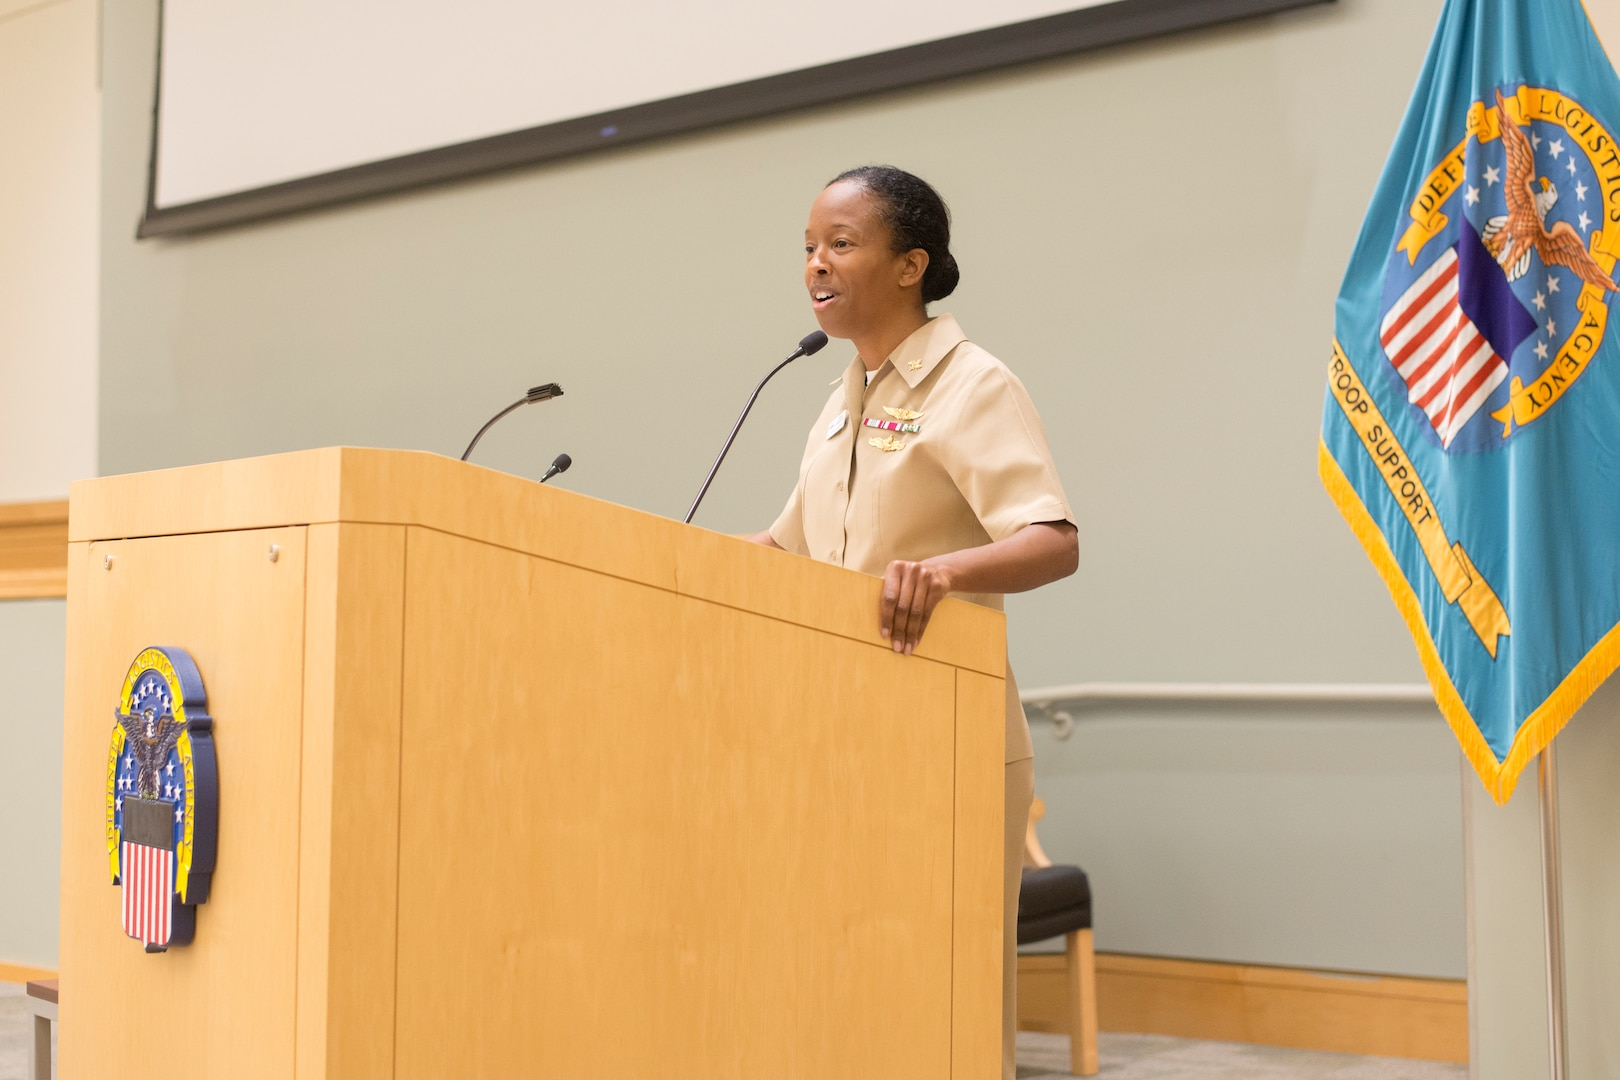 Navy Capt. Kerri Yarbrough, Naval Supply Systems Command Weapon Systems Support Aviation deputy commander, speaks to the audience during a National American Indian Heritage Month program at DLA Troop Support, Dec. 11, 2018 in Philadelphia.